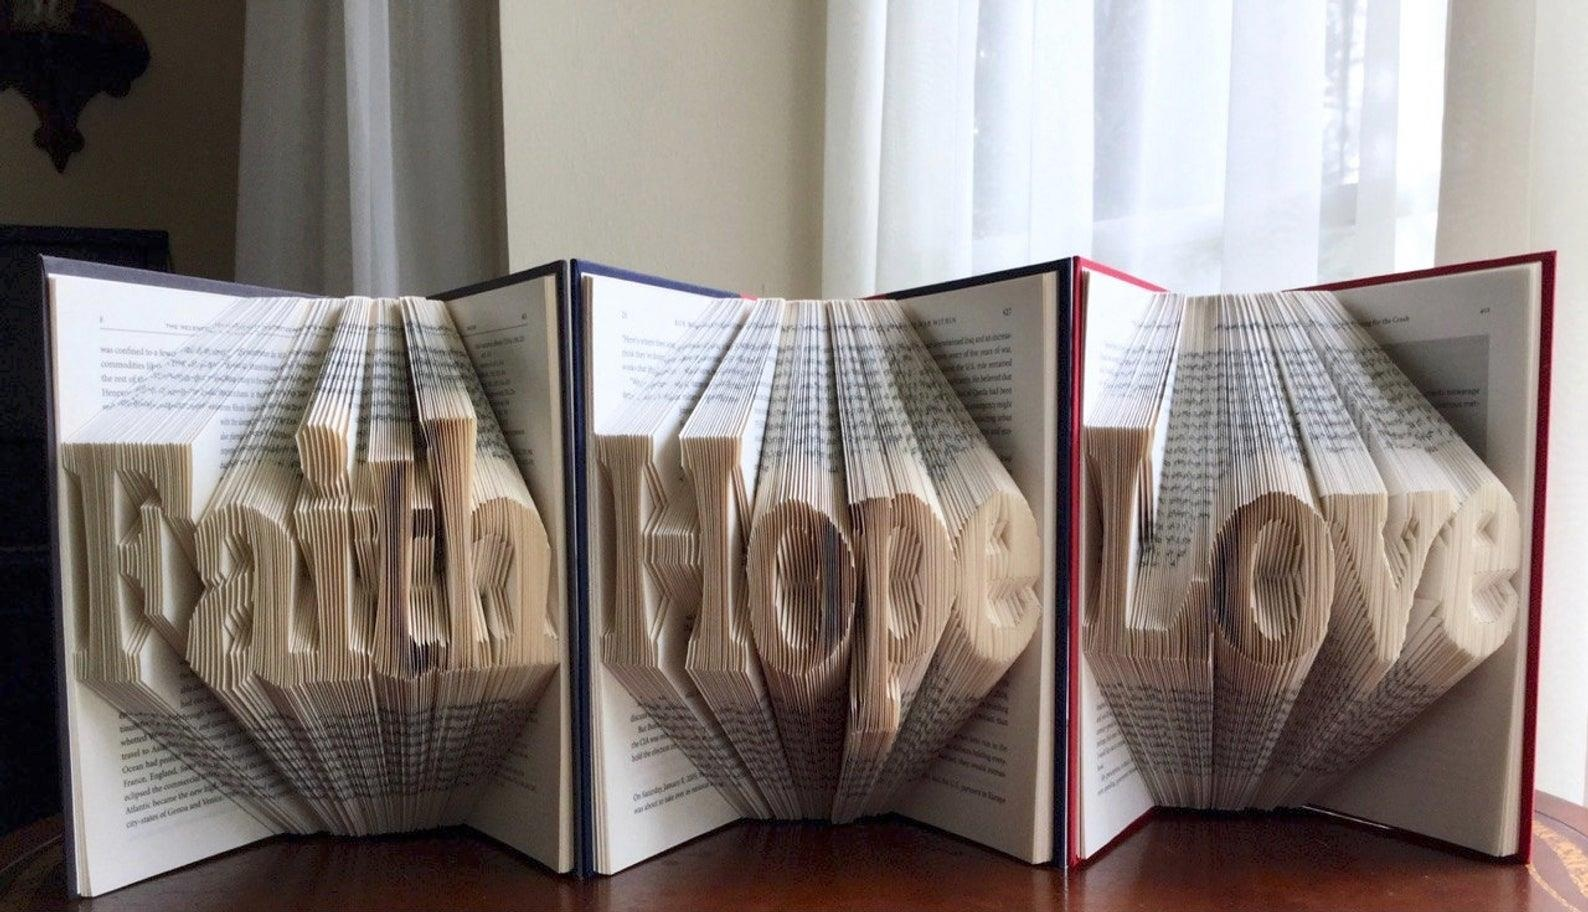 Faith, Hope and Love - A trio of Faith, Hope and Love beautifully displayed as book origami can be yours if the bid is right! Local artist, Sherry Fochler will present these to you personally.Starting Bid $100.00